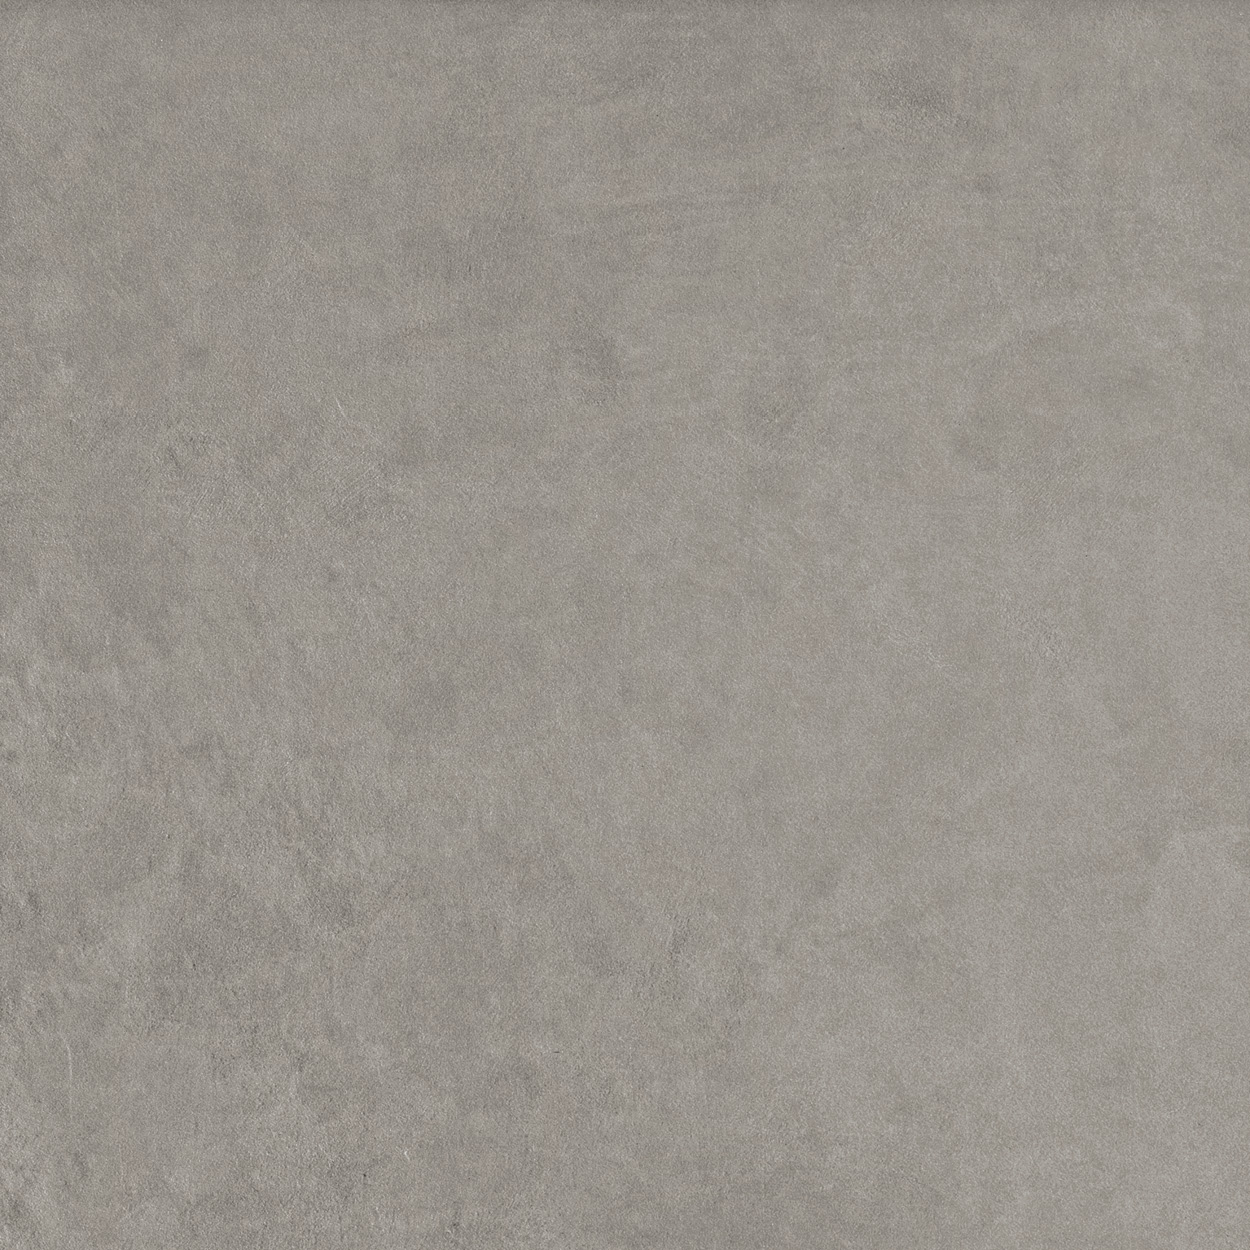 32 x 32 Seamless WR_02 Porcelain tile (SPECIAL ORDER ONLY)